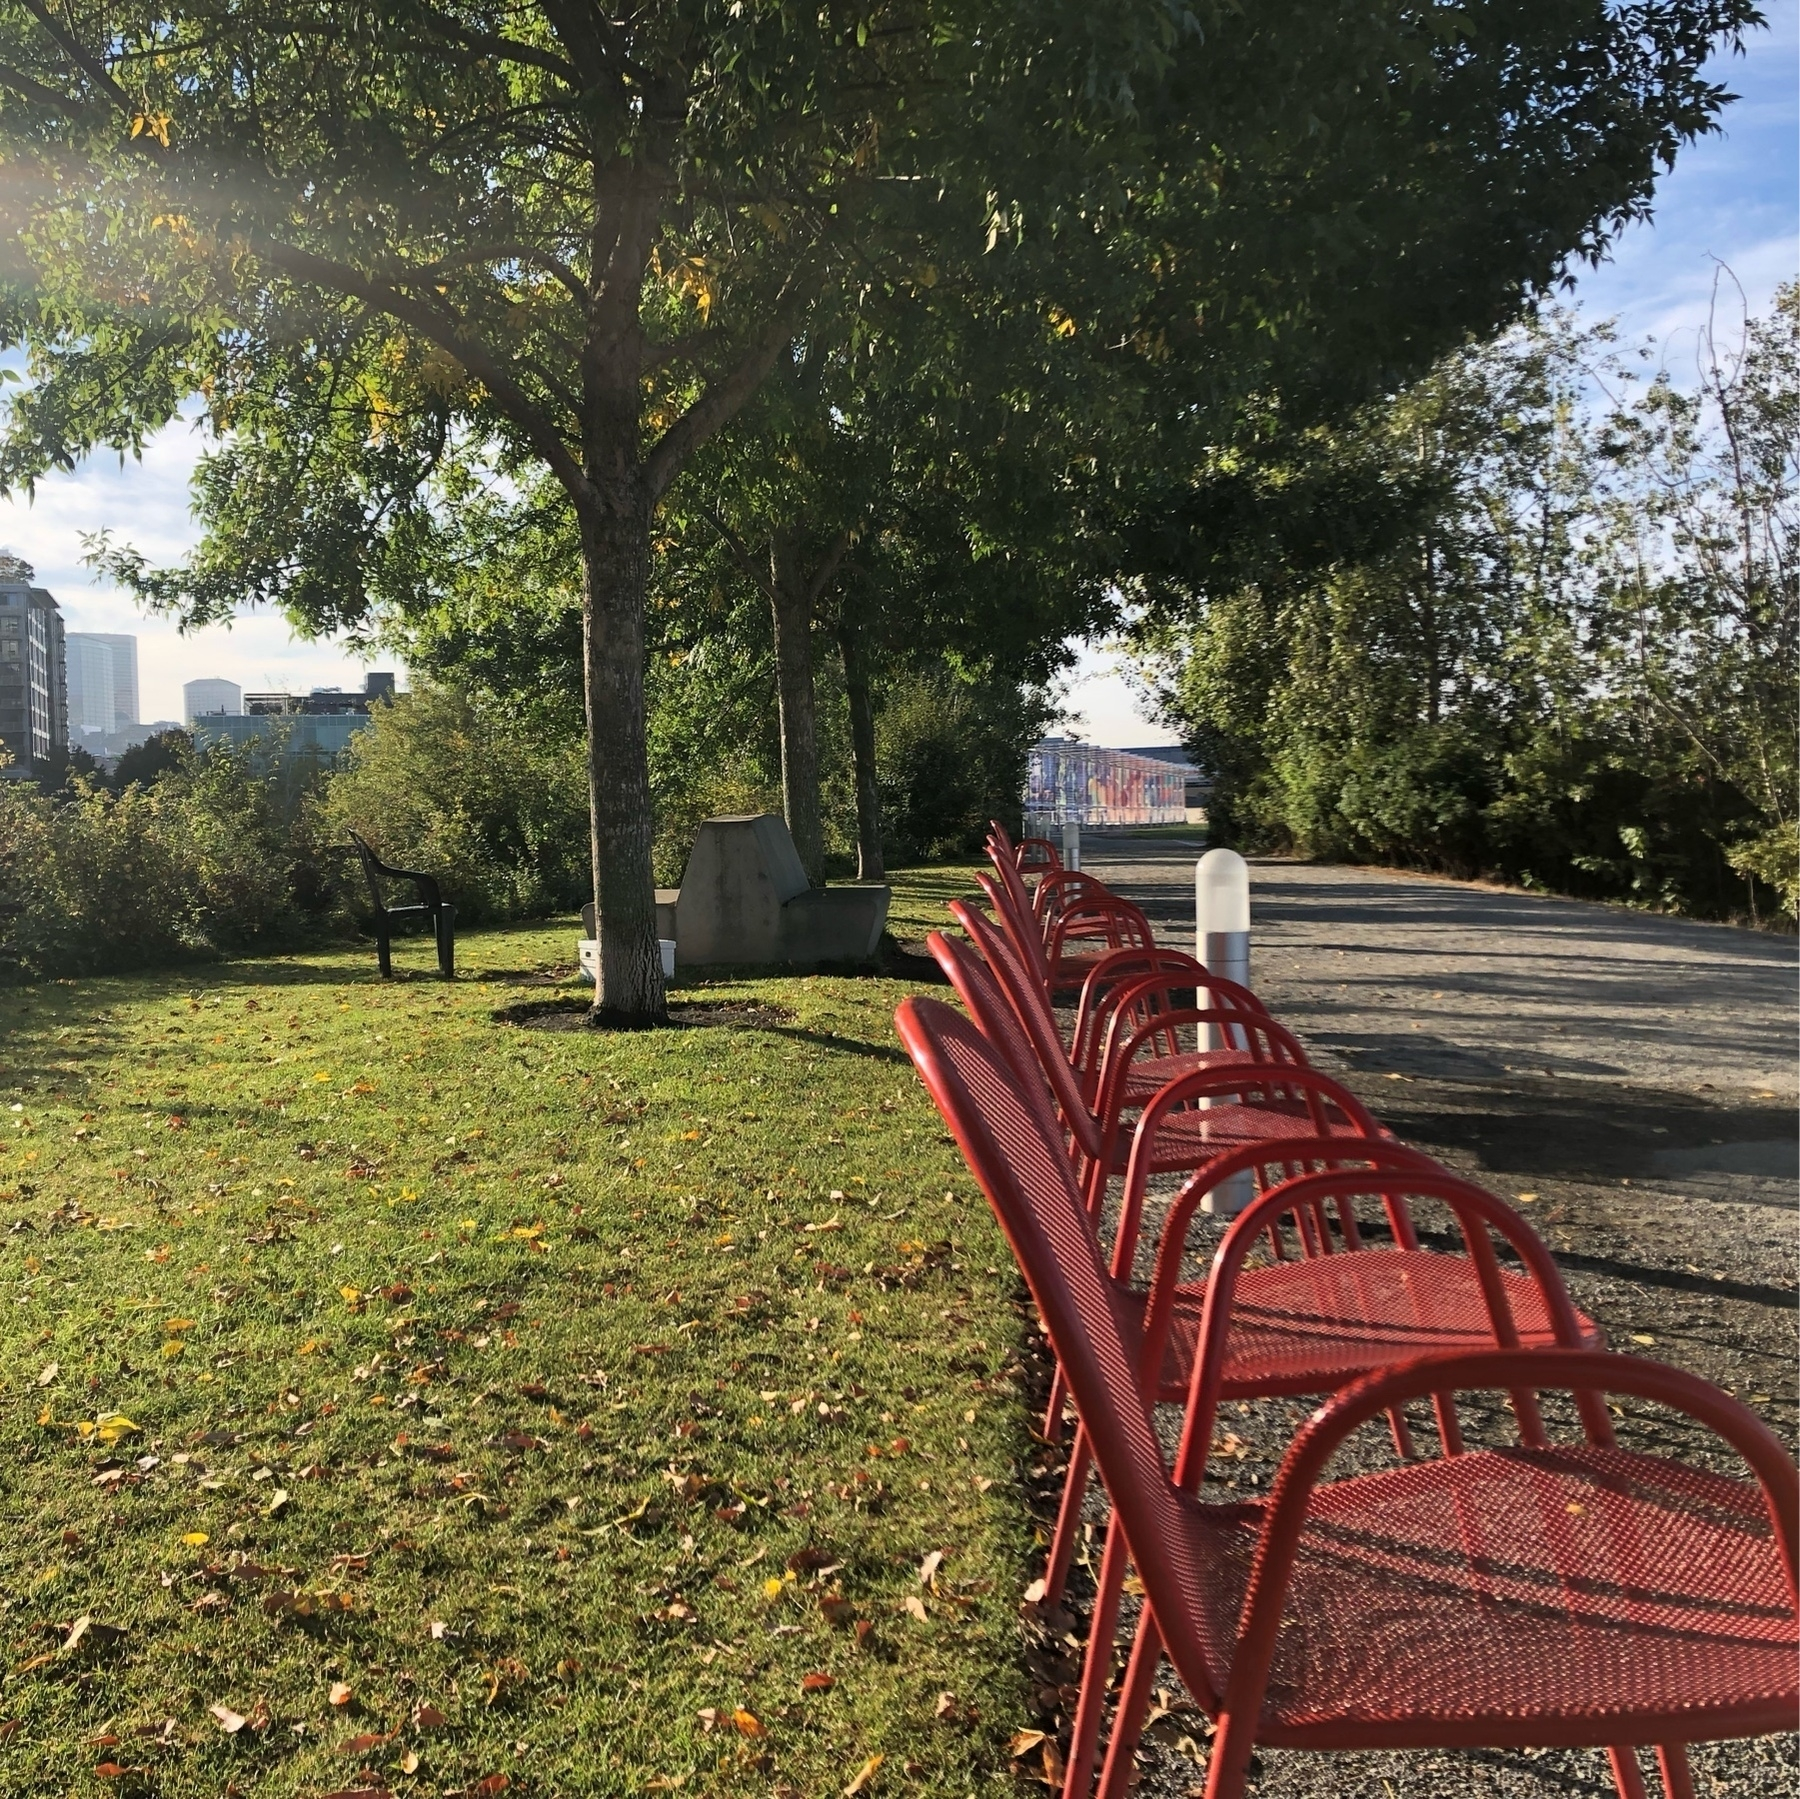 A row of red metal chairs along a path. The damp green grass is littered with early fall leaves. green grass. red chairs. yellow leaves. slanting sunlight. A portrait of early fall.